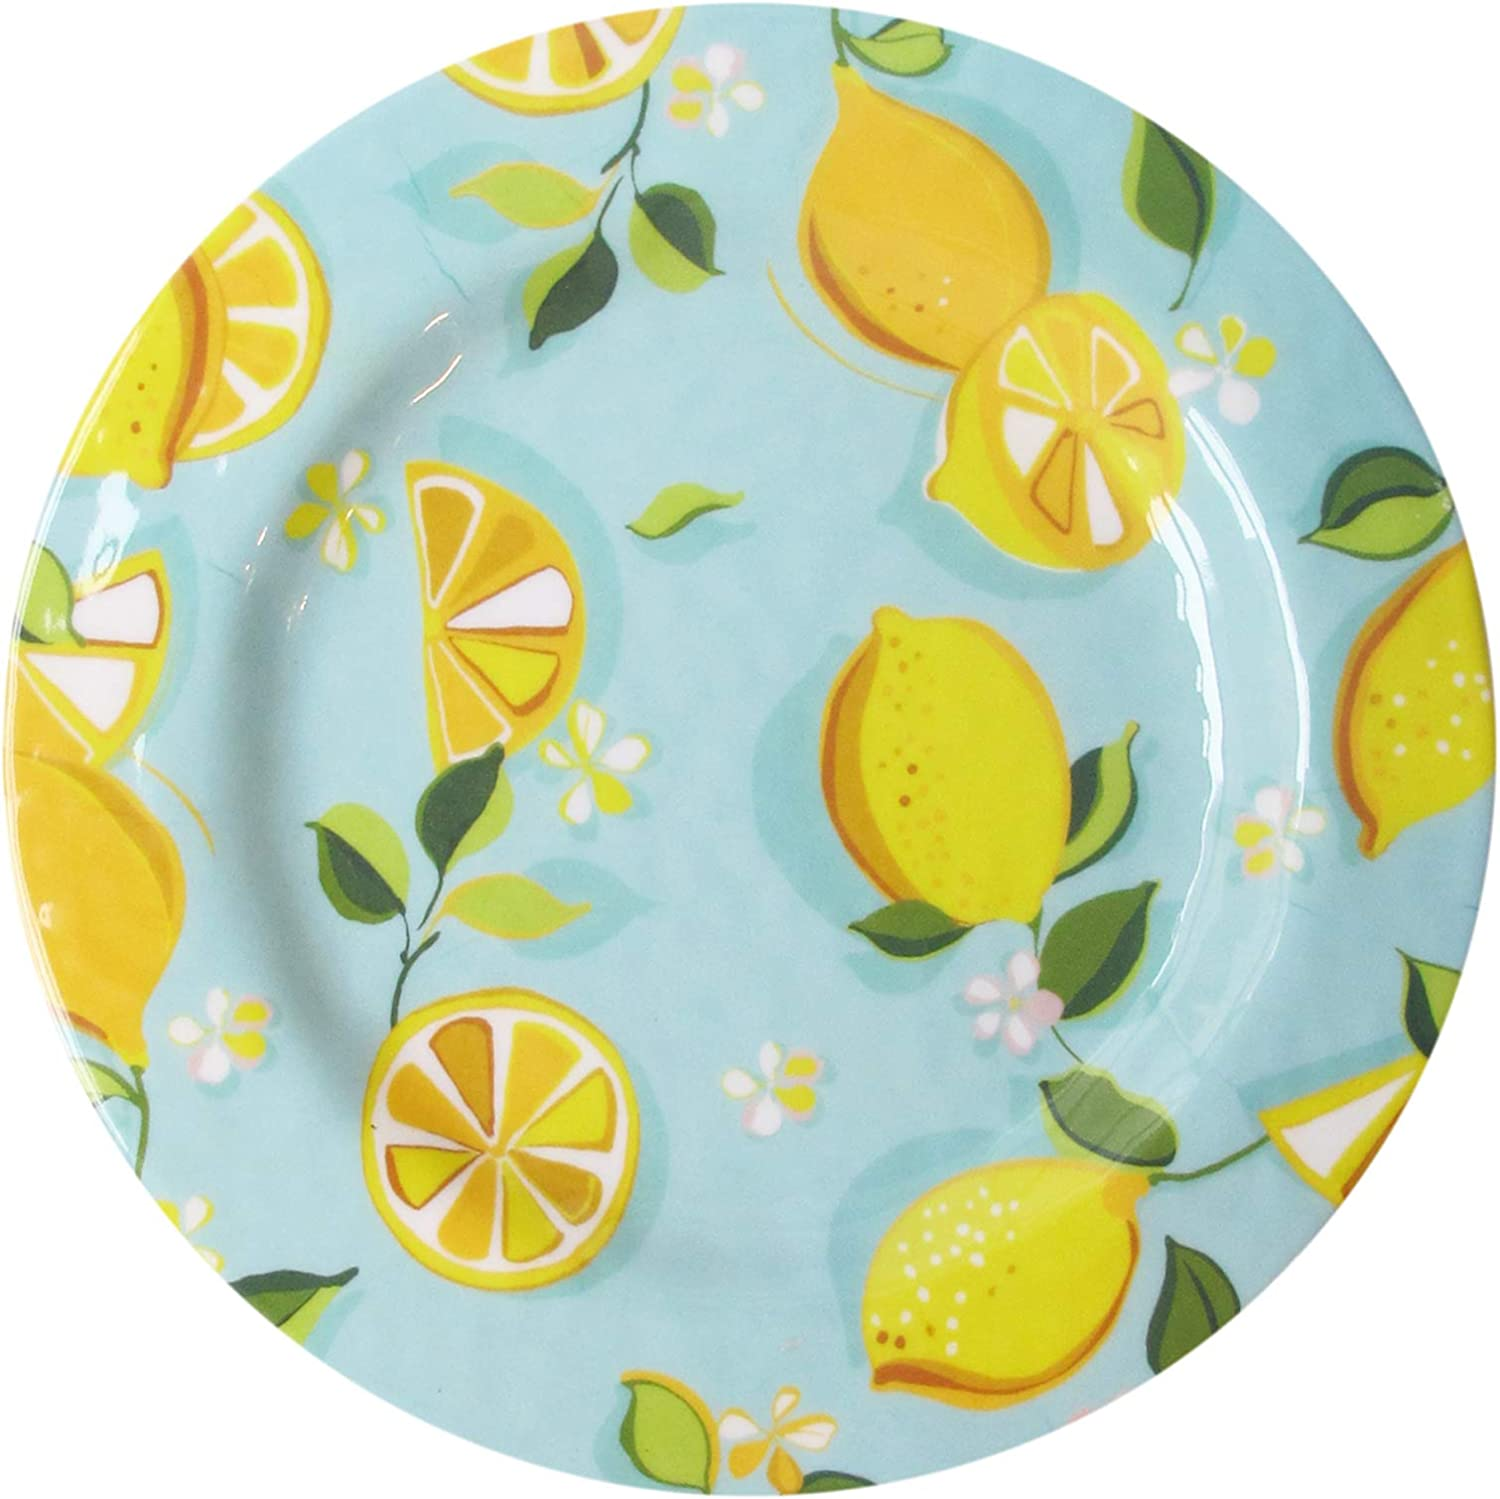 Trina Turk Melamine Set of 4 Dinner Plates Unbreakable, Lightweight Indoor & Outdoor Dinnerware Set for Home Entertaining, Barbecues, Picnics, Parties & Camping-BPA-Free, Lemons